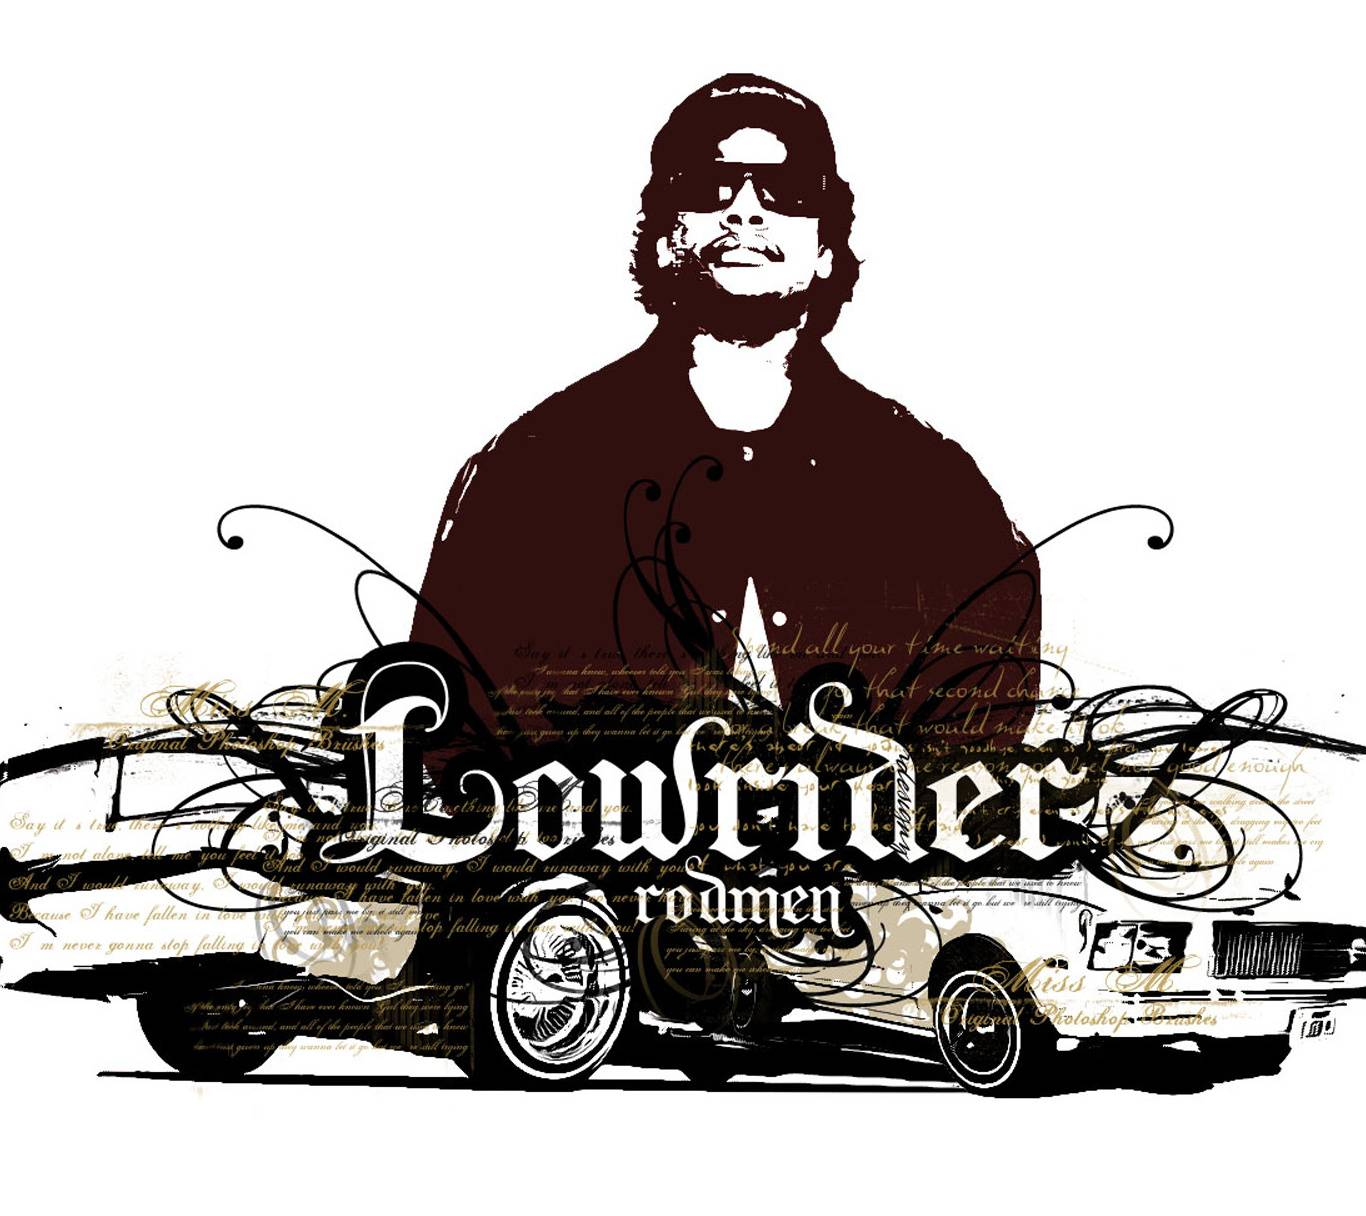 1366x1216 - Lowrider Wallpapers 25